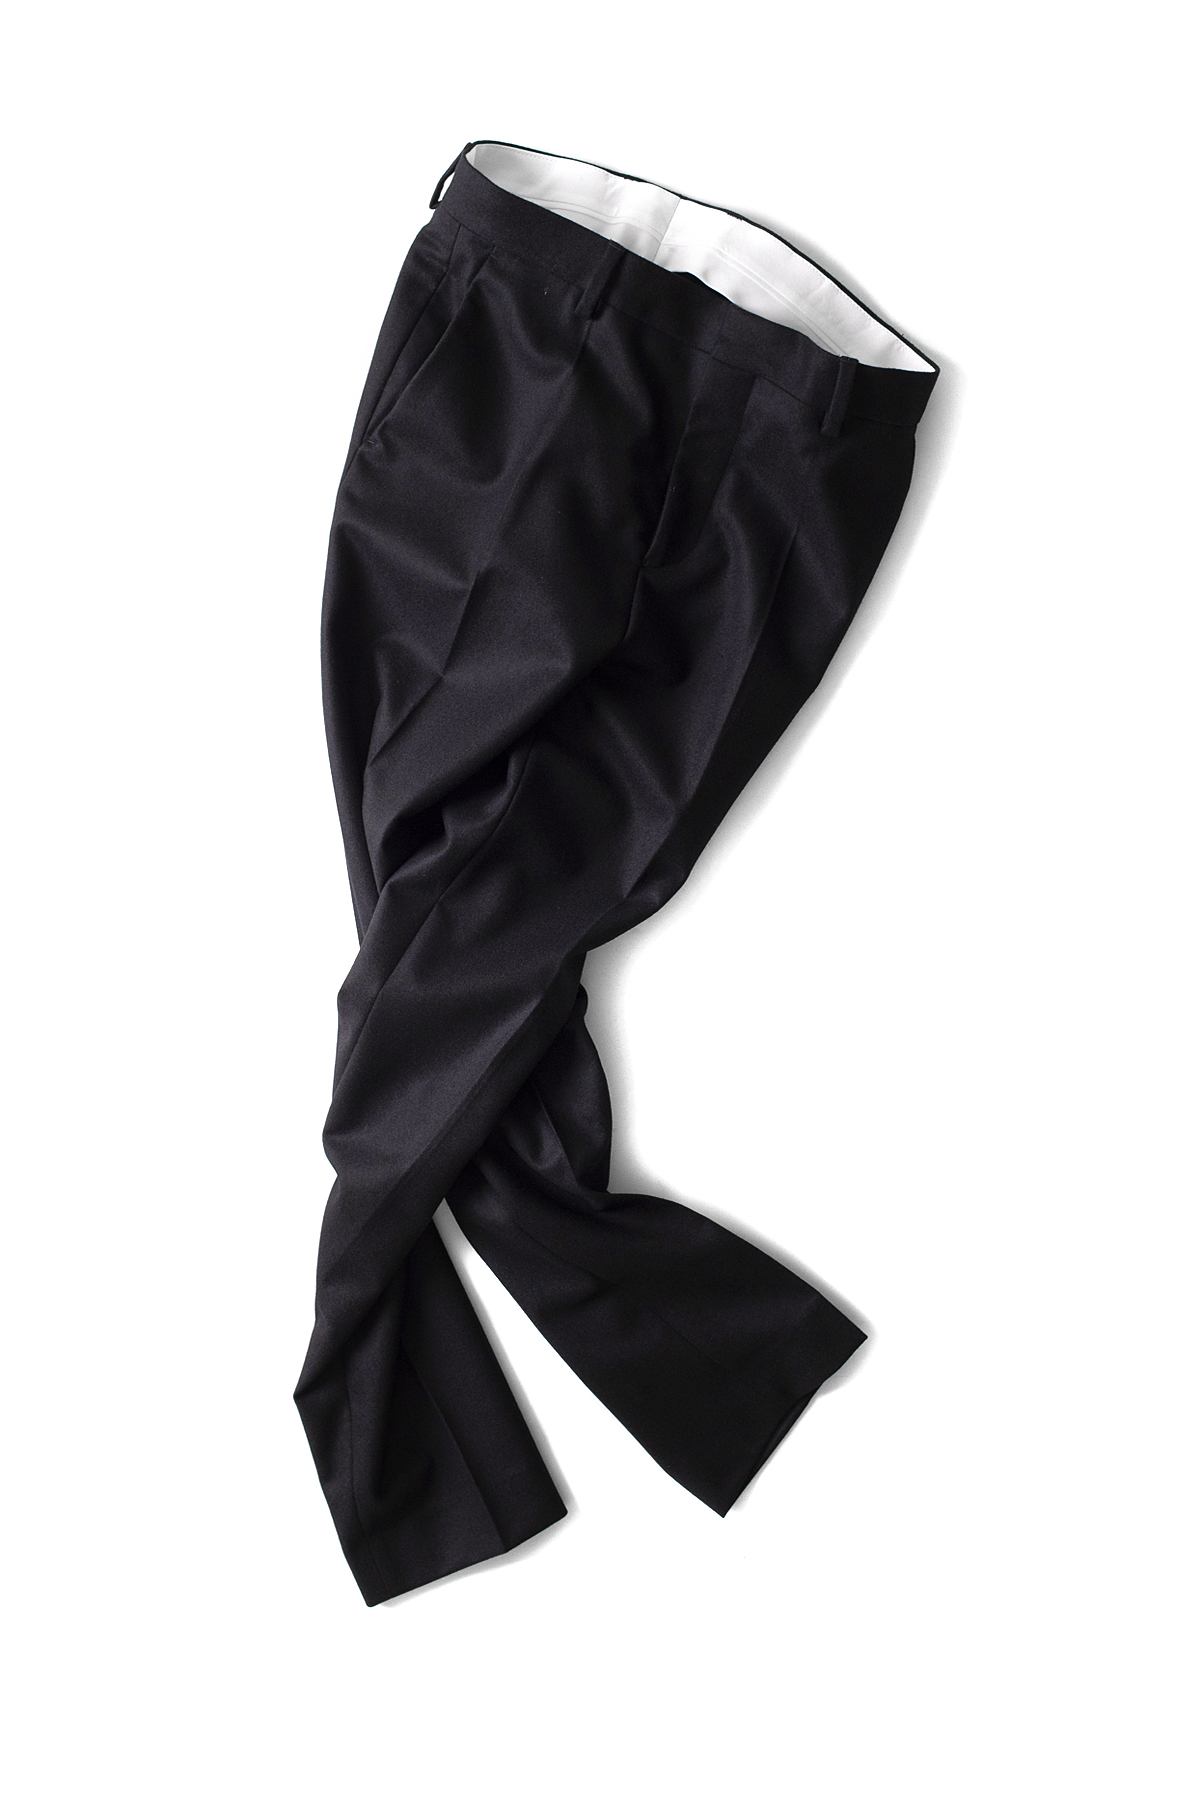 HARMONY : Peter Trouser (Black)